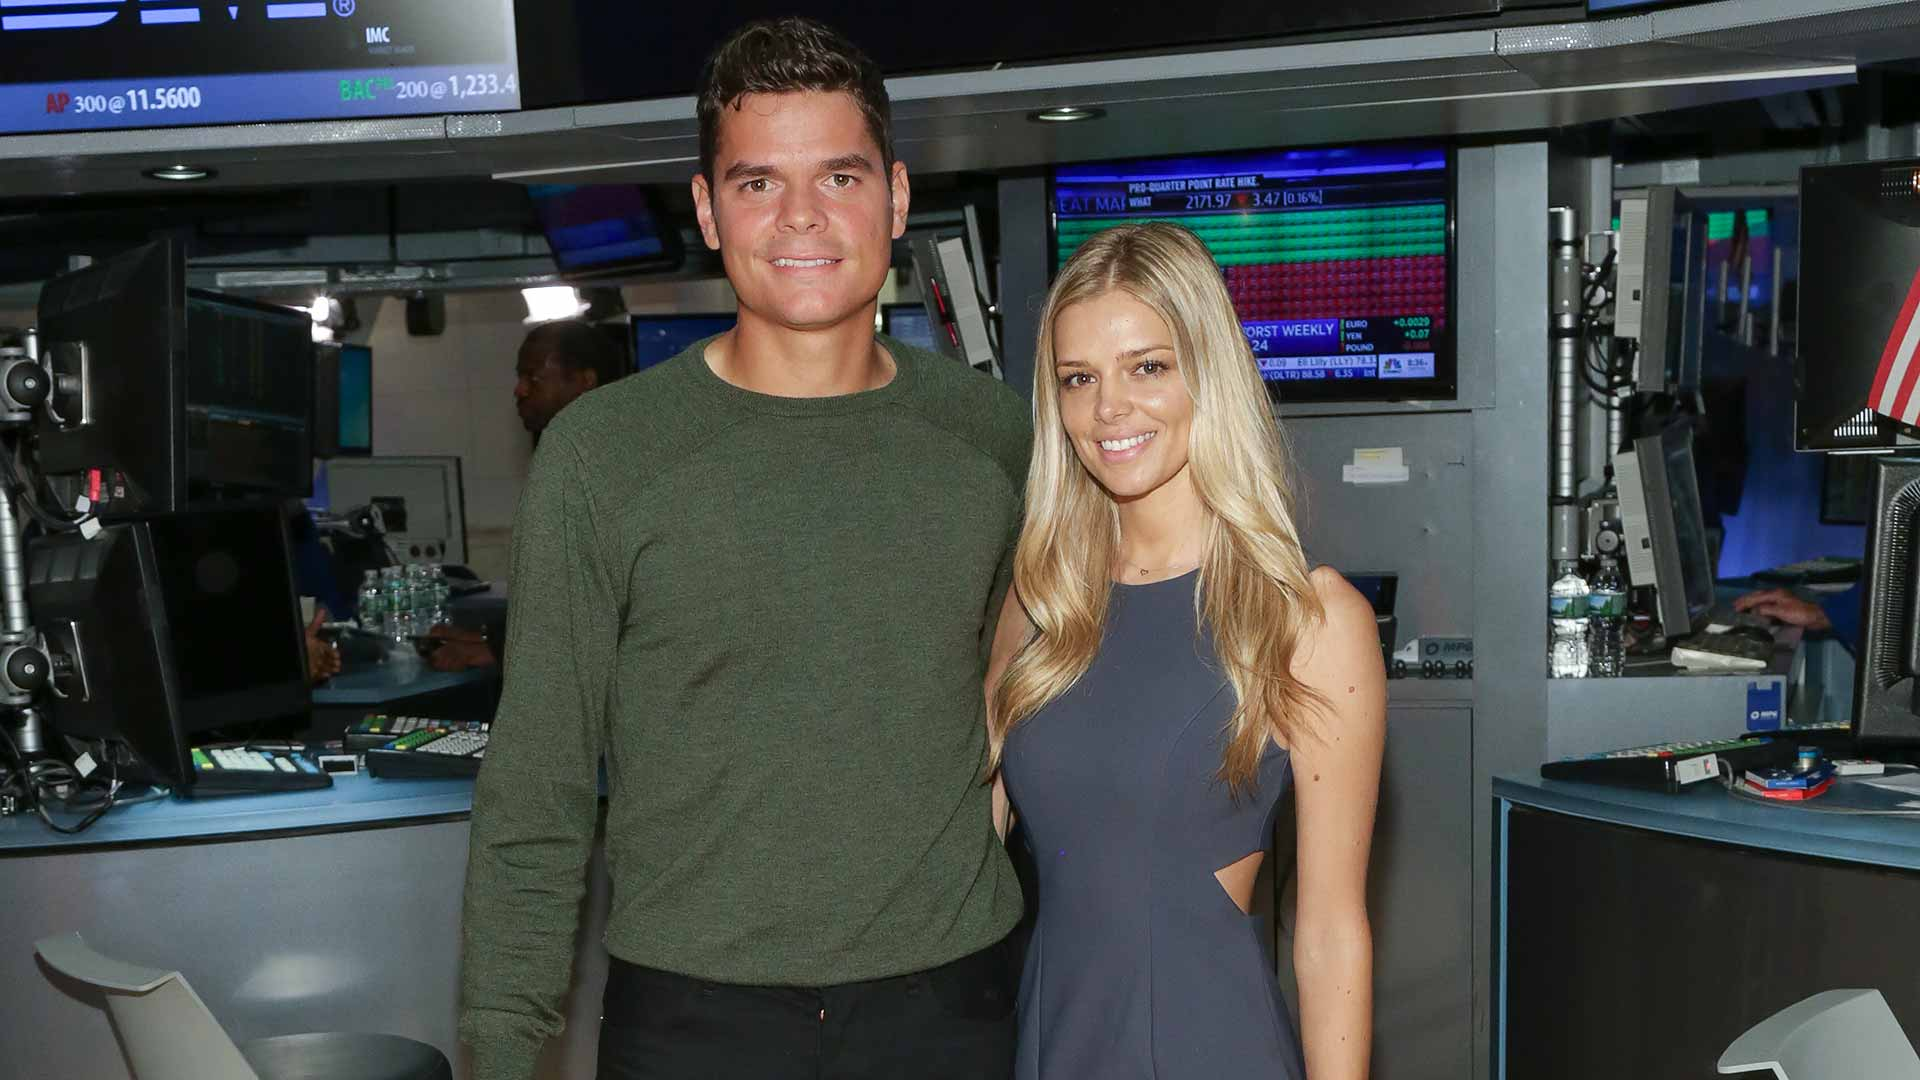 Milos Raonic and girlfriend Danielle Knudson visit the New York Stock Exchange.